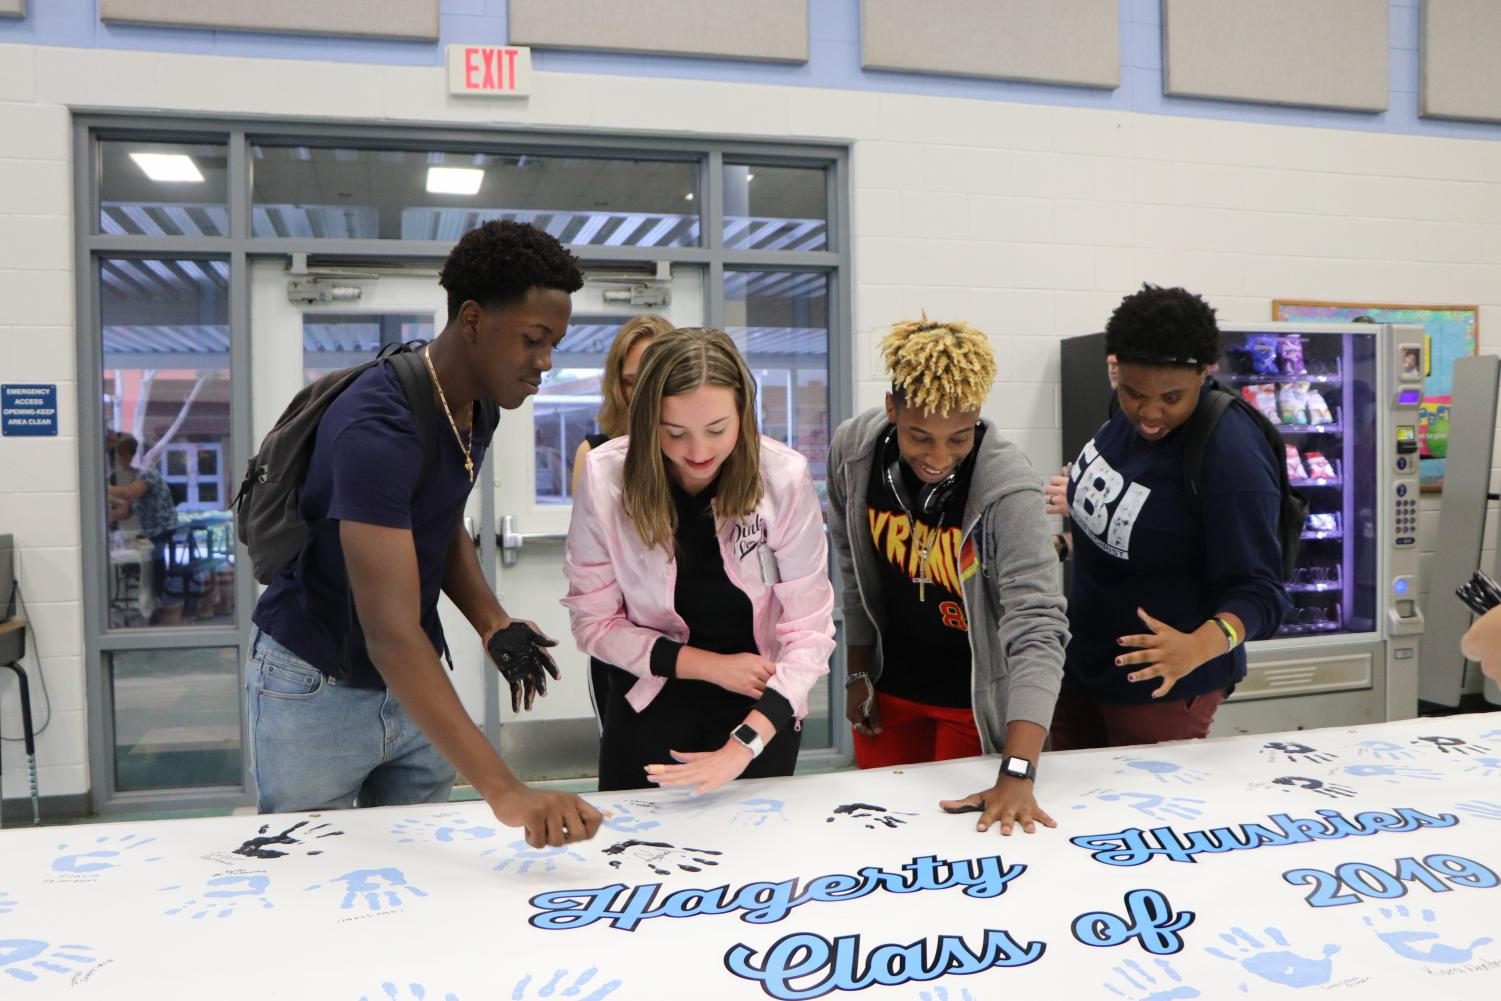 Seniors Jonathan Valentin, Katie Sherlock, Da'Zhaun Hicks and Jazmyne Essington put their painted handprint on one of the two banners for Paws on the Wall.